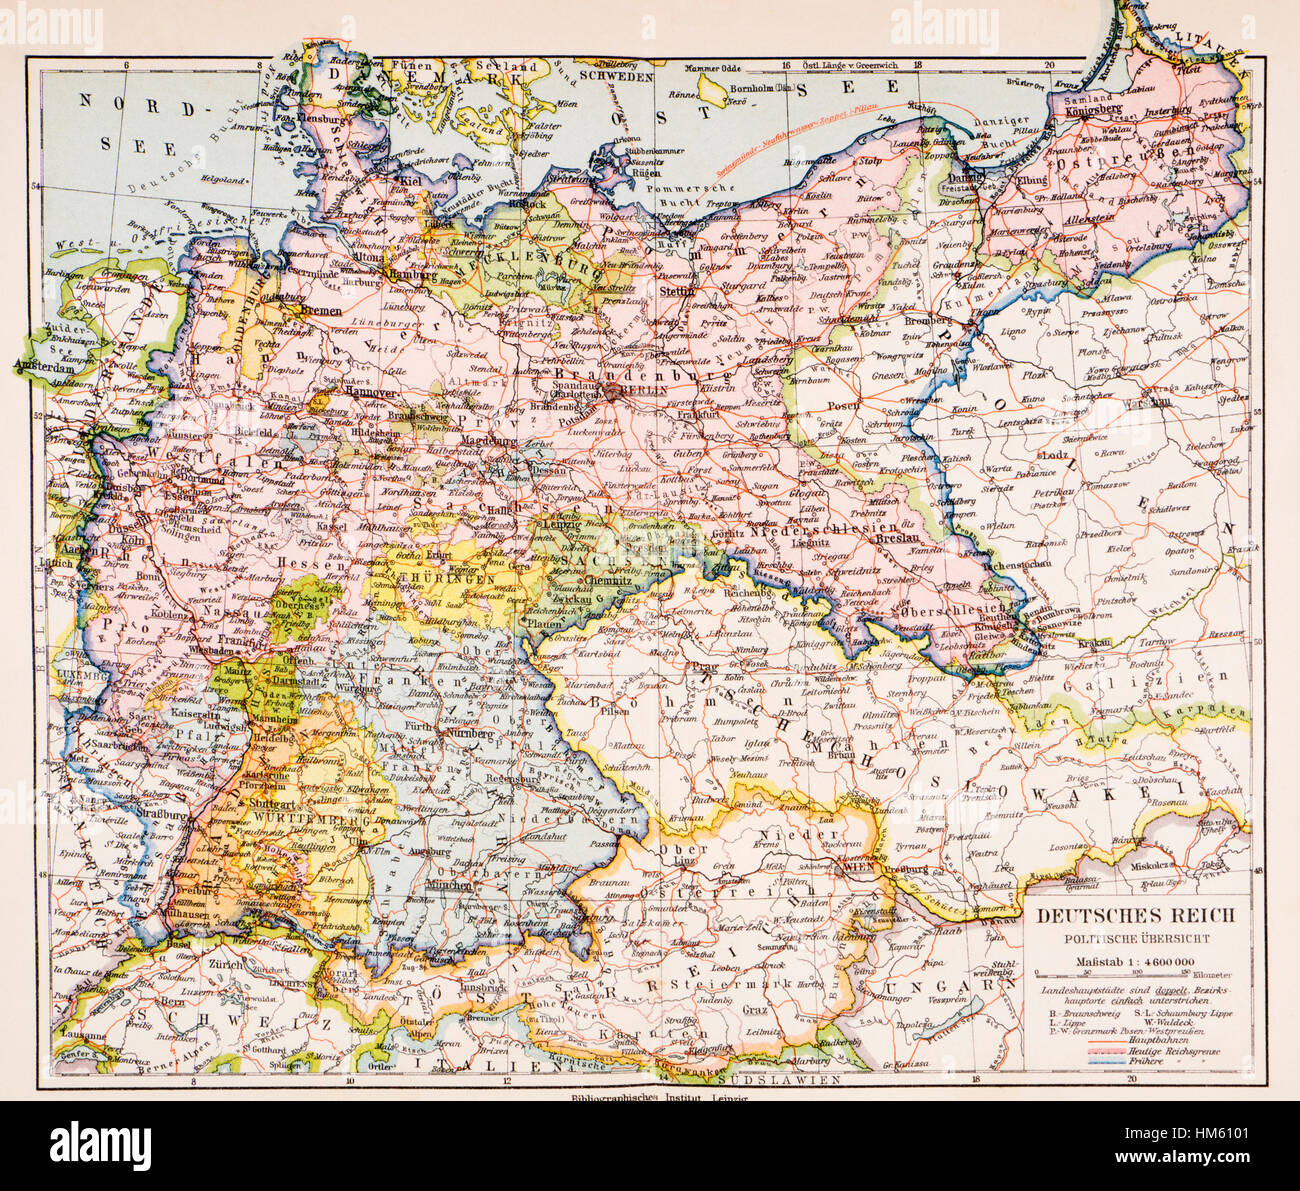 Map of germany between world war one and world war two from map of germany between world war one and world war two from meyers lexicon published 1928 gumiabroncs Choice Image